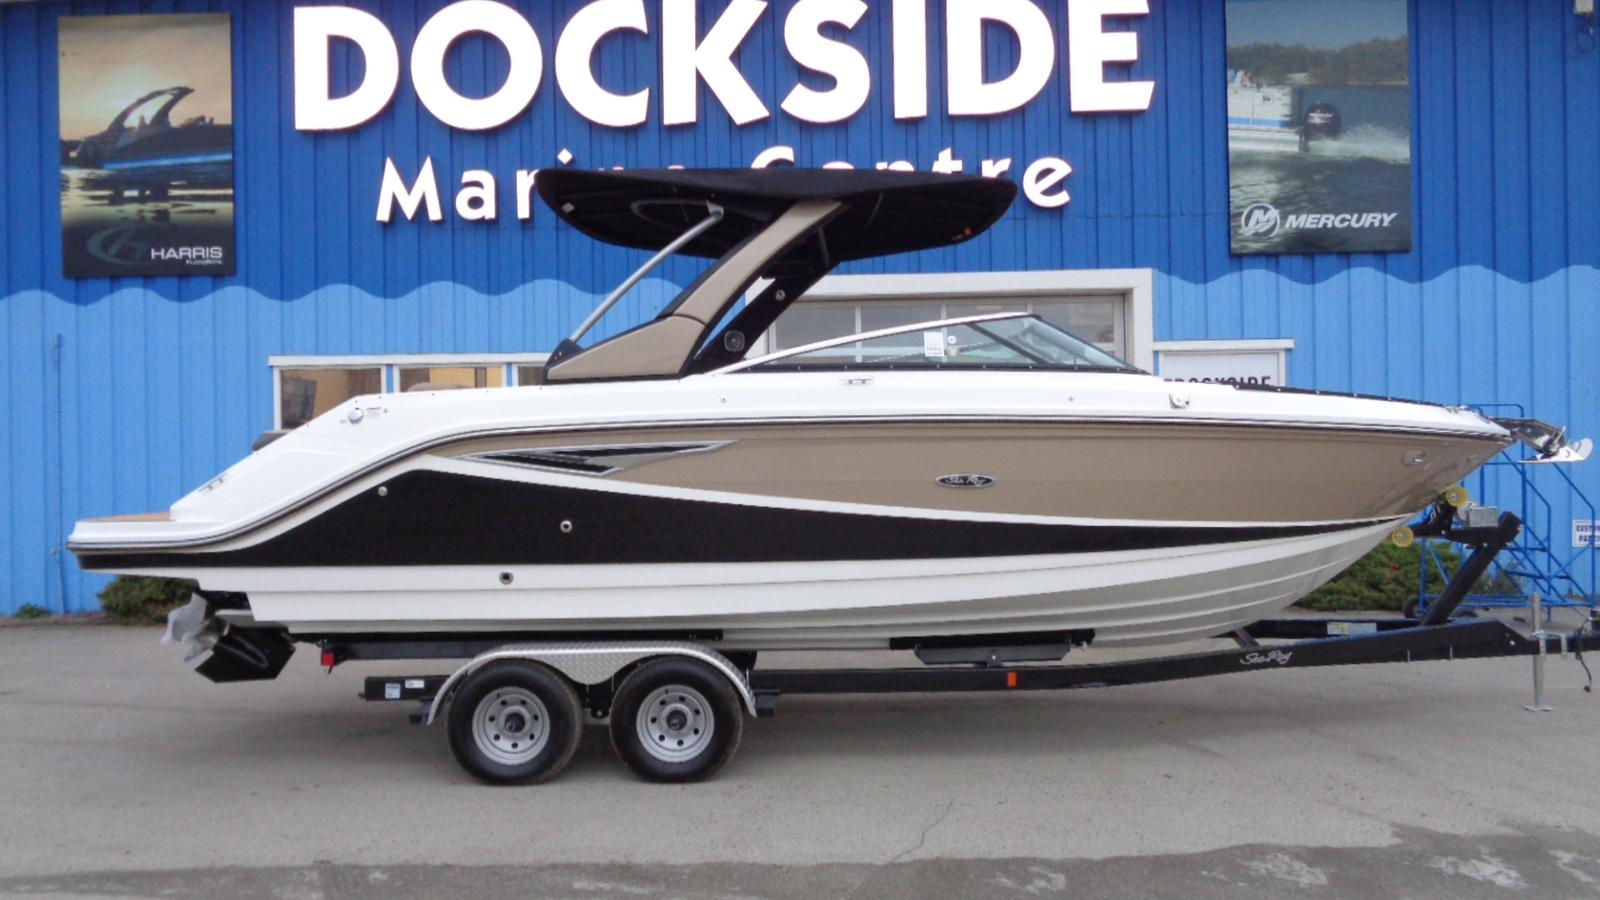 For Sale: 2018 Sea Ray Slx 280 29ft<br/>Dockside Marine Centre, LTD.